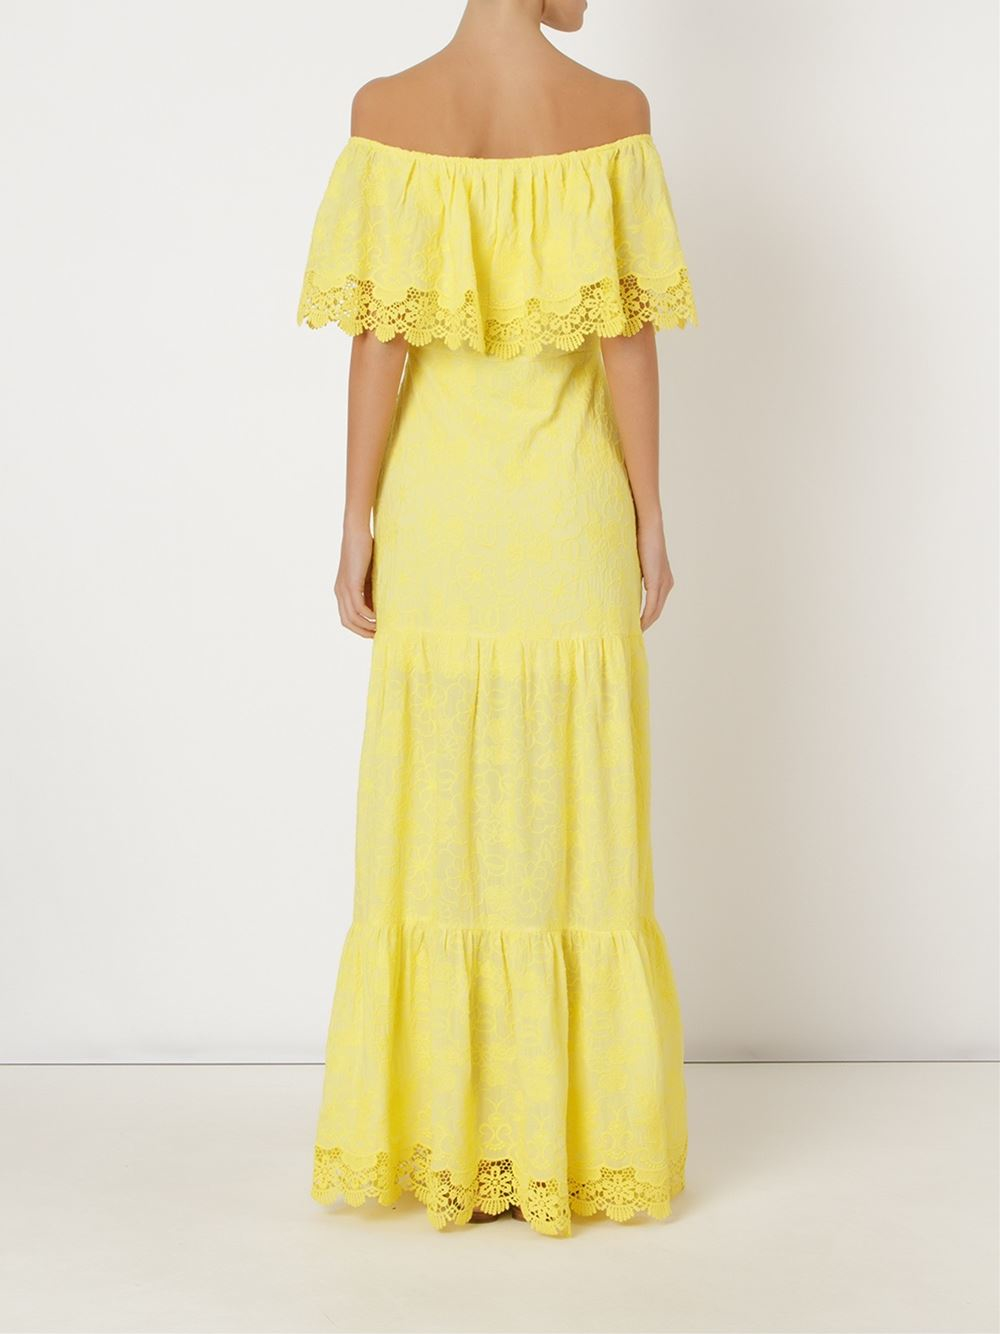 8a8eefb80c9b Gallery. Previously sold at  Farfetch · Women s Off The Shoulder Dresses ...